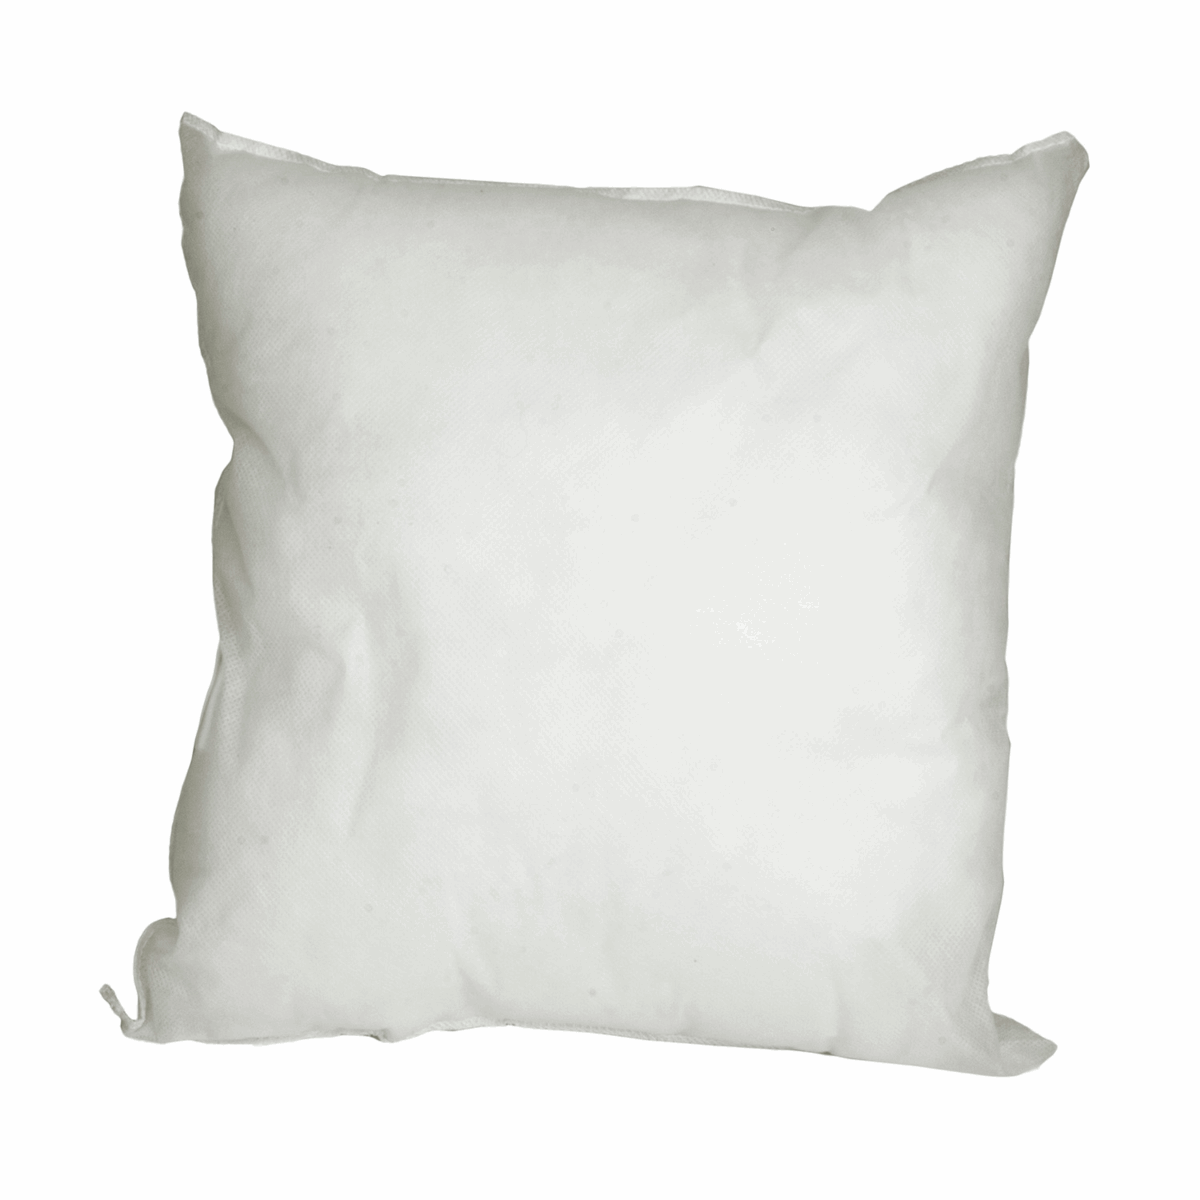 Picture of Cushion Pad: 18in